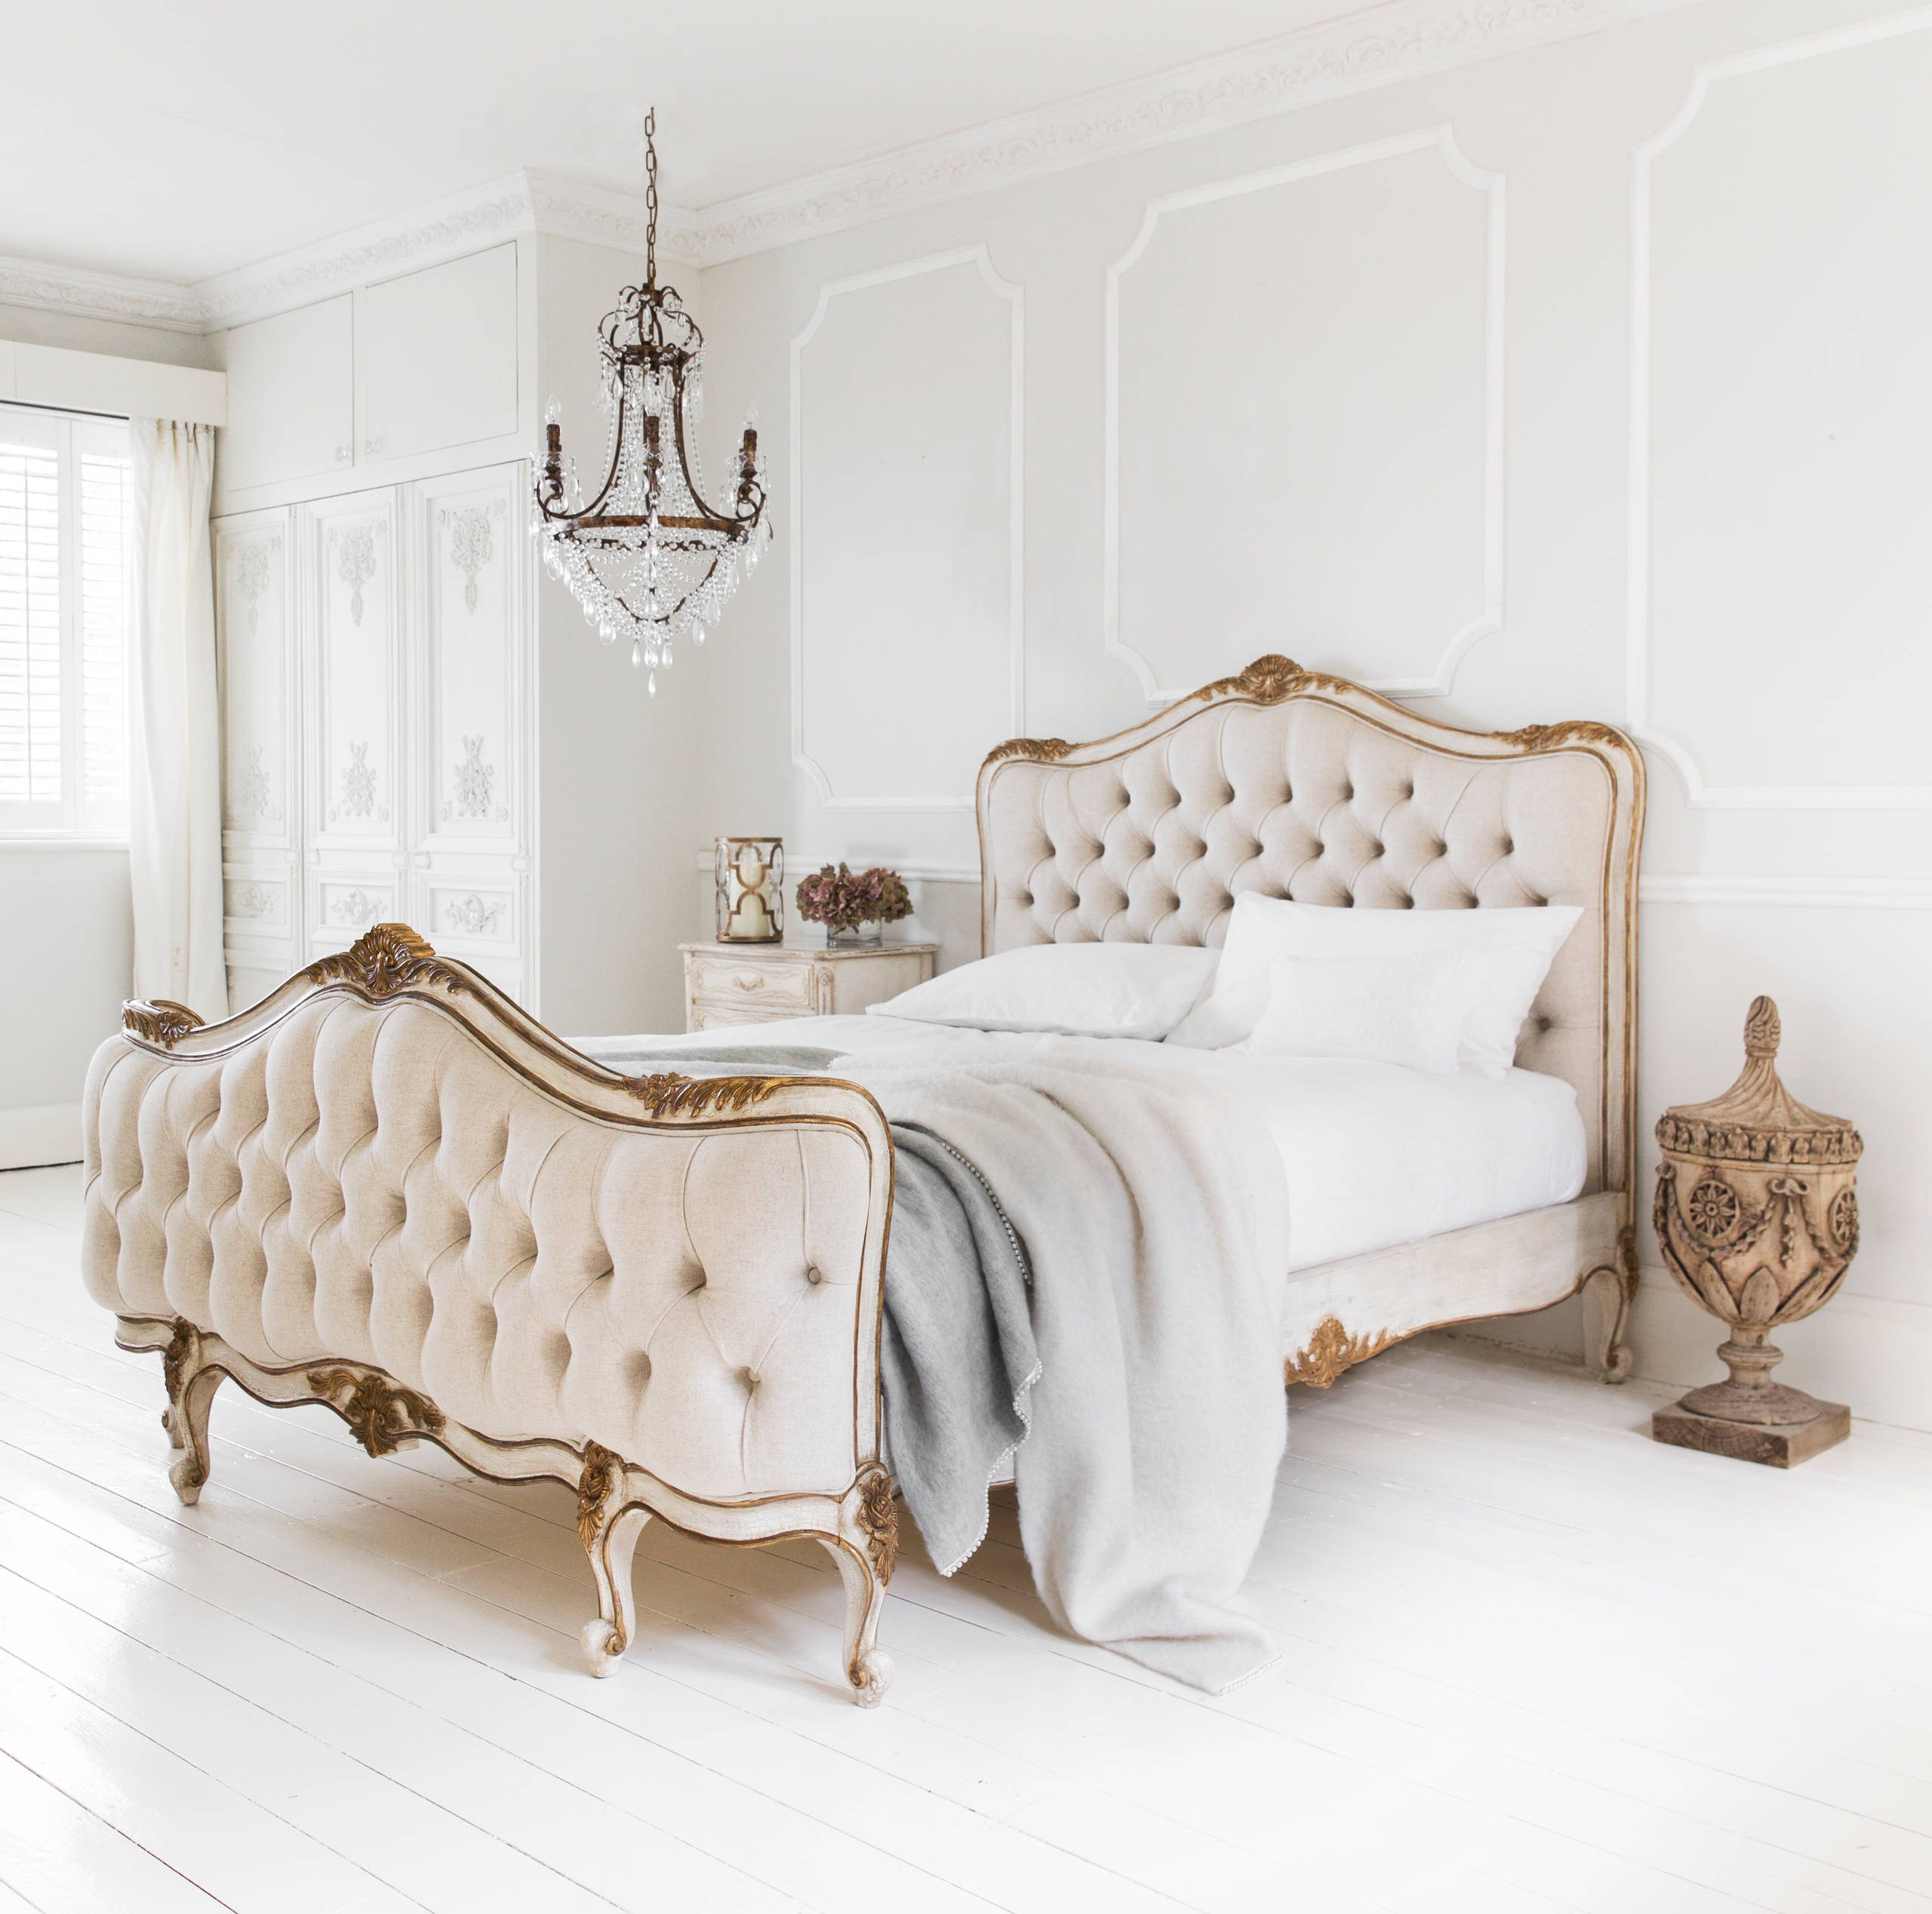 traditional bedroom french parisian tufted bed diy diamond headboard all white hardwood floors gold versailles - French Style Bedroom Decorating Ideas